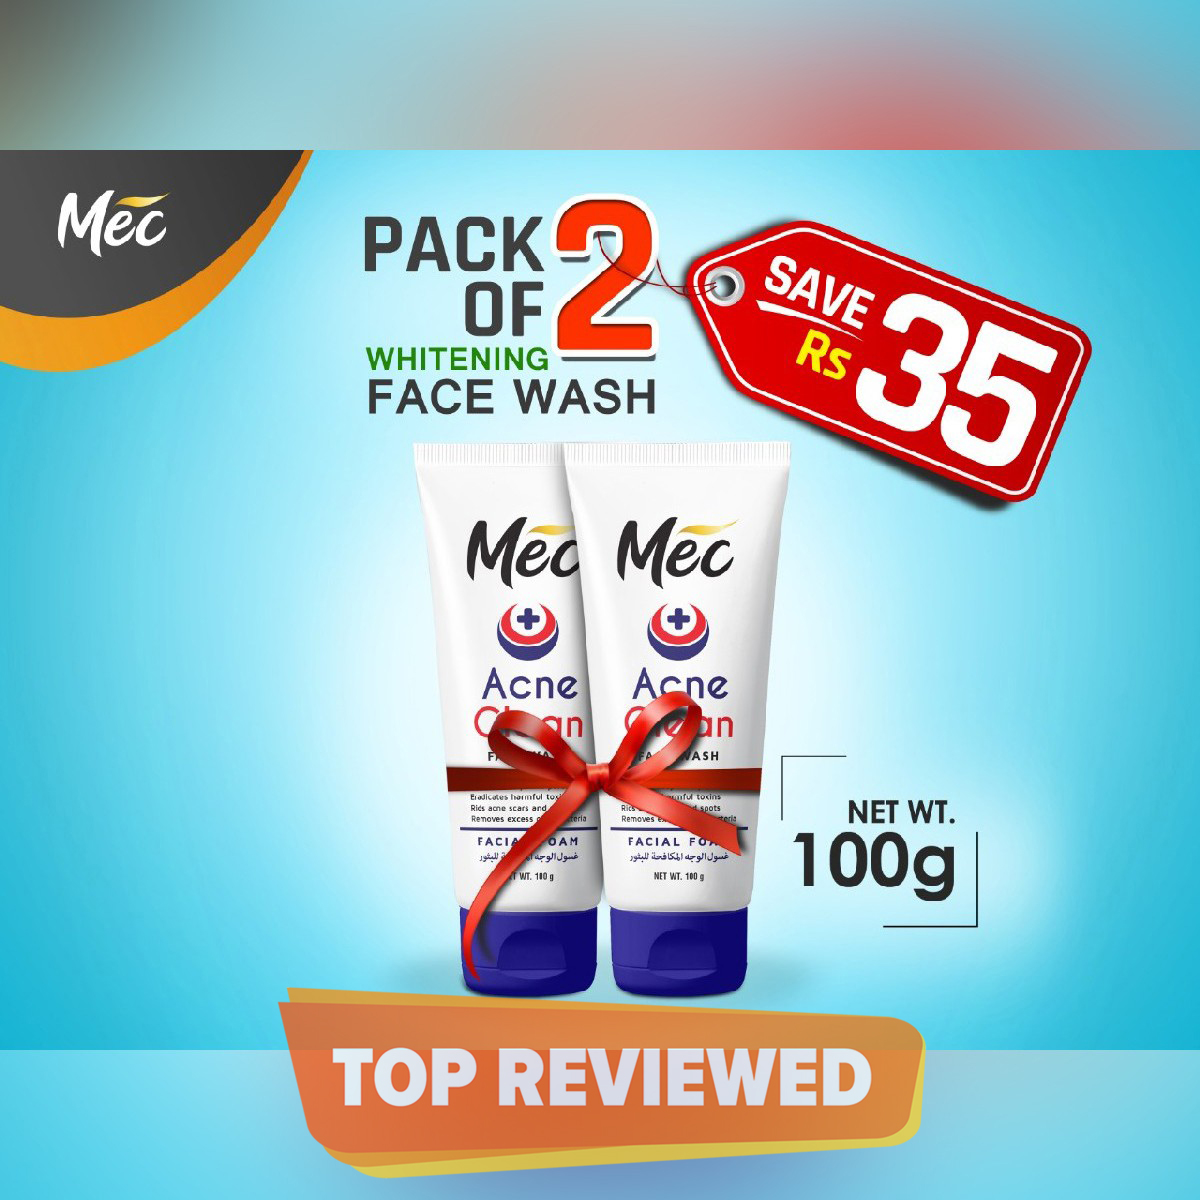 Mec Whitening Acne Clean Face Wash (Pack of 2)